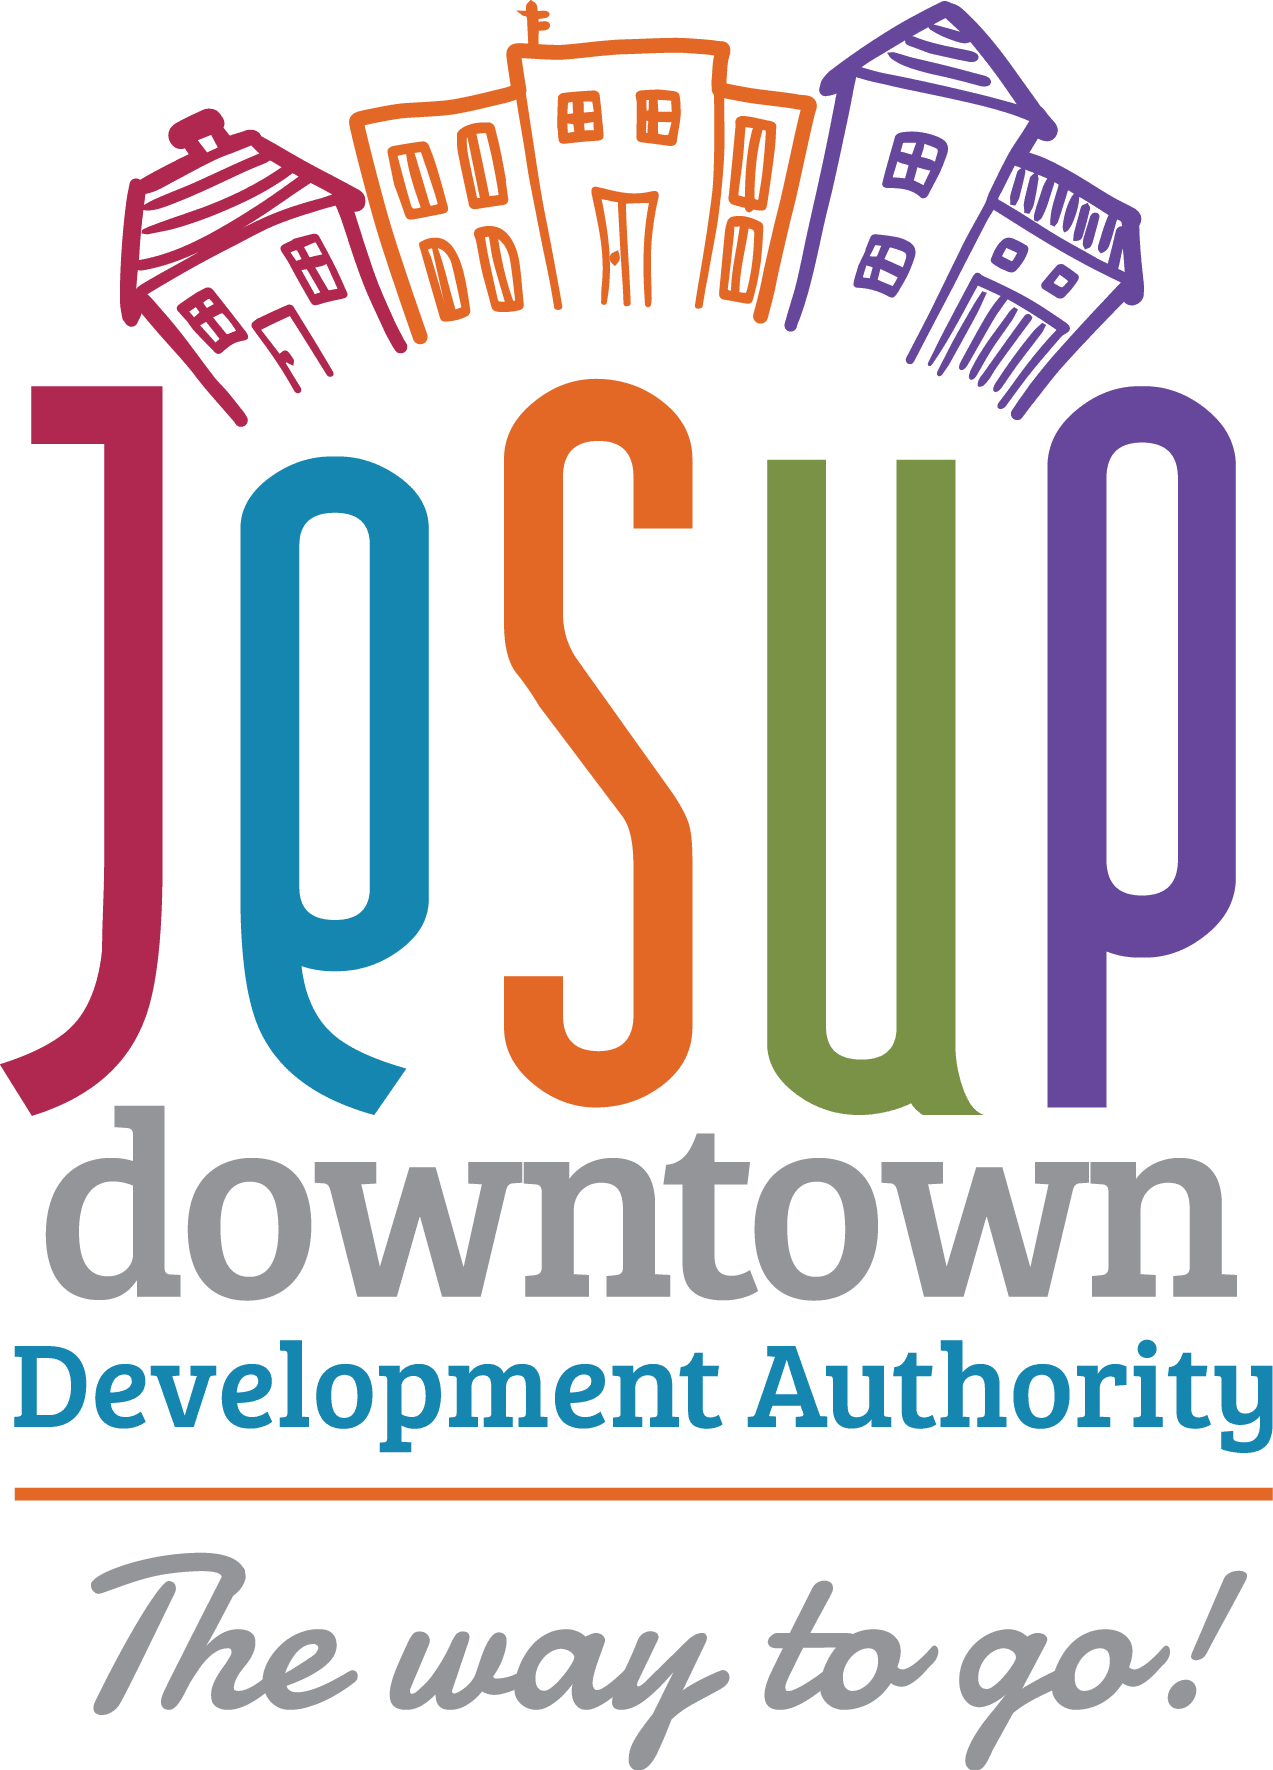 City of Jesup DDA - full color